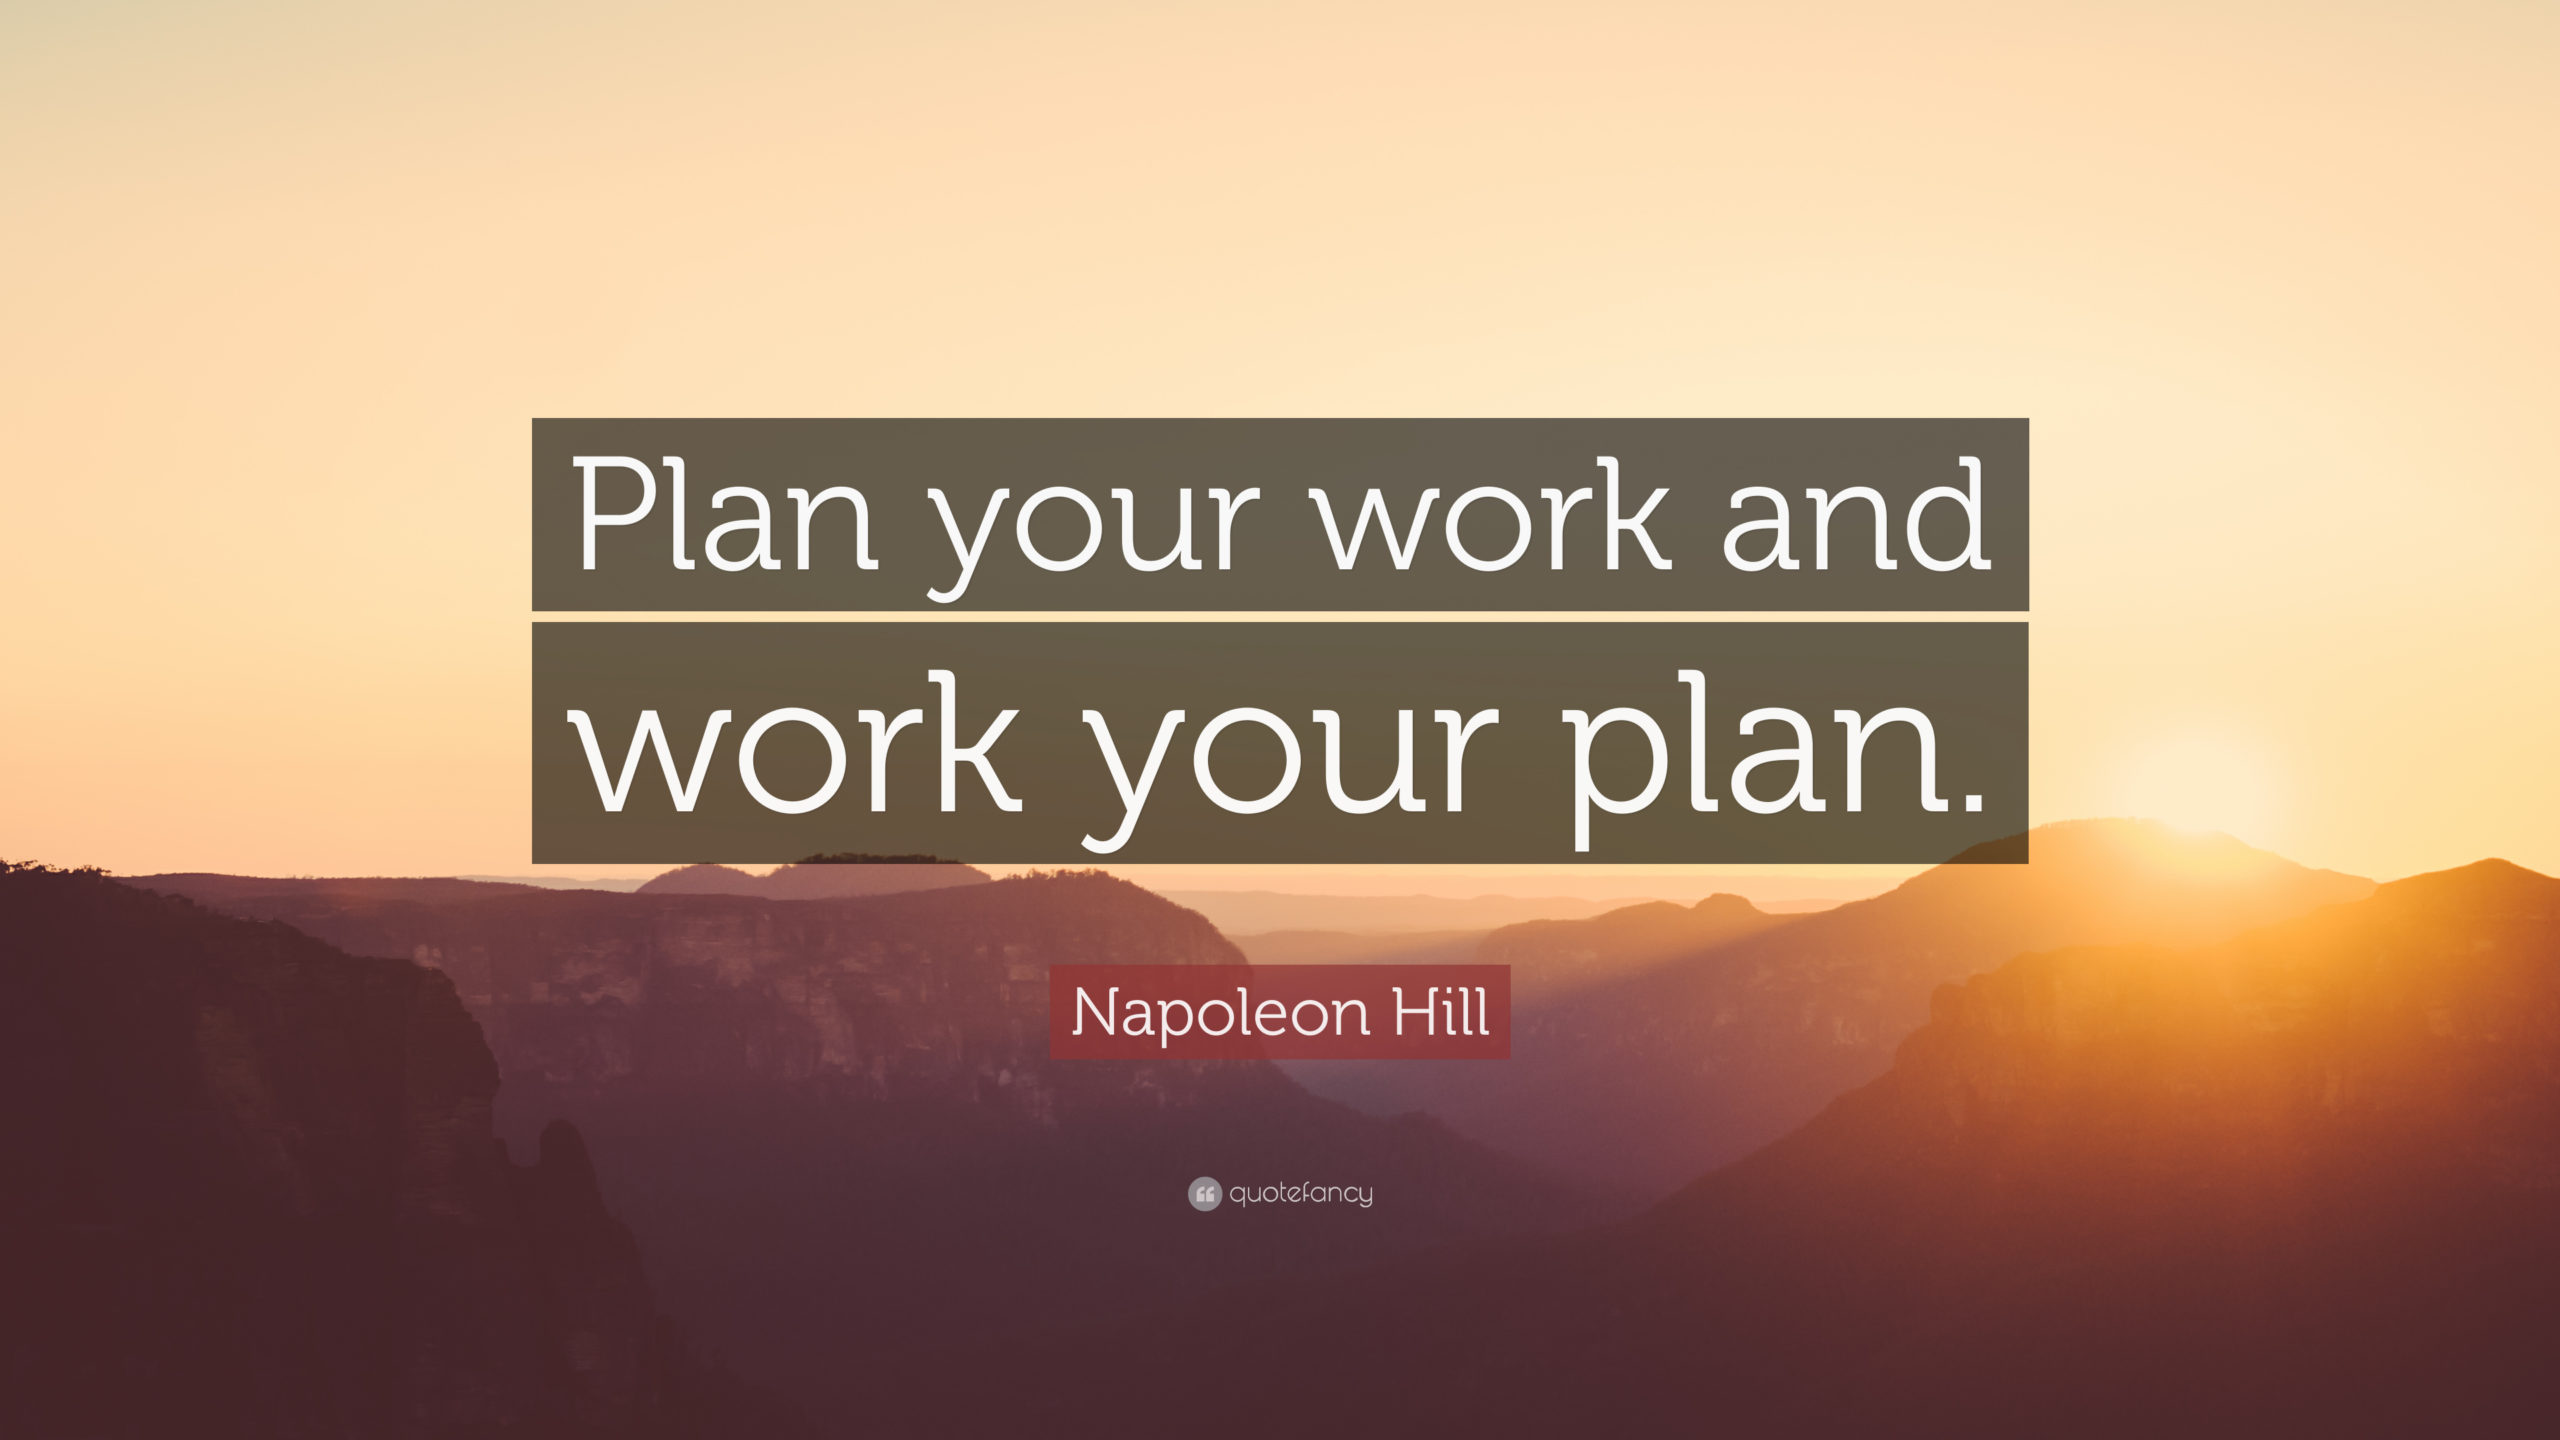 106903-Napoleon-Hill-Quote-Plan-your-work-and-work-your-plan